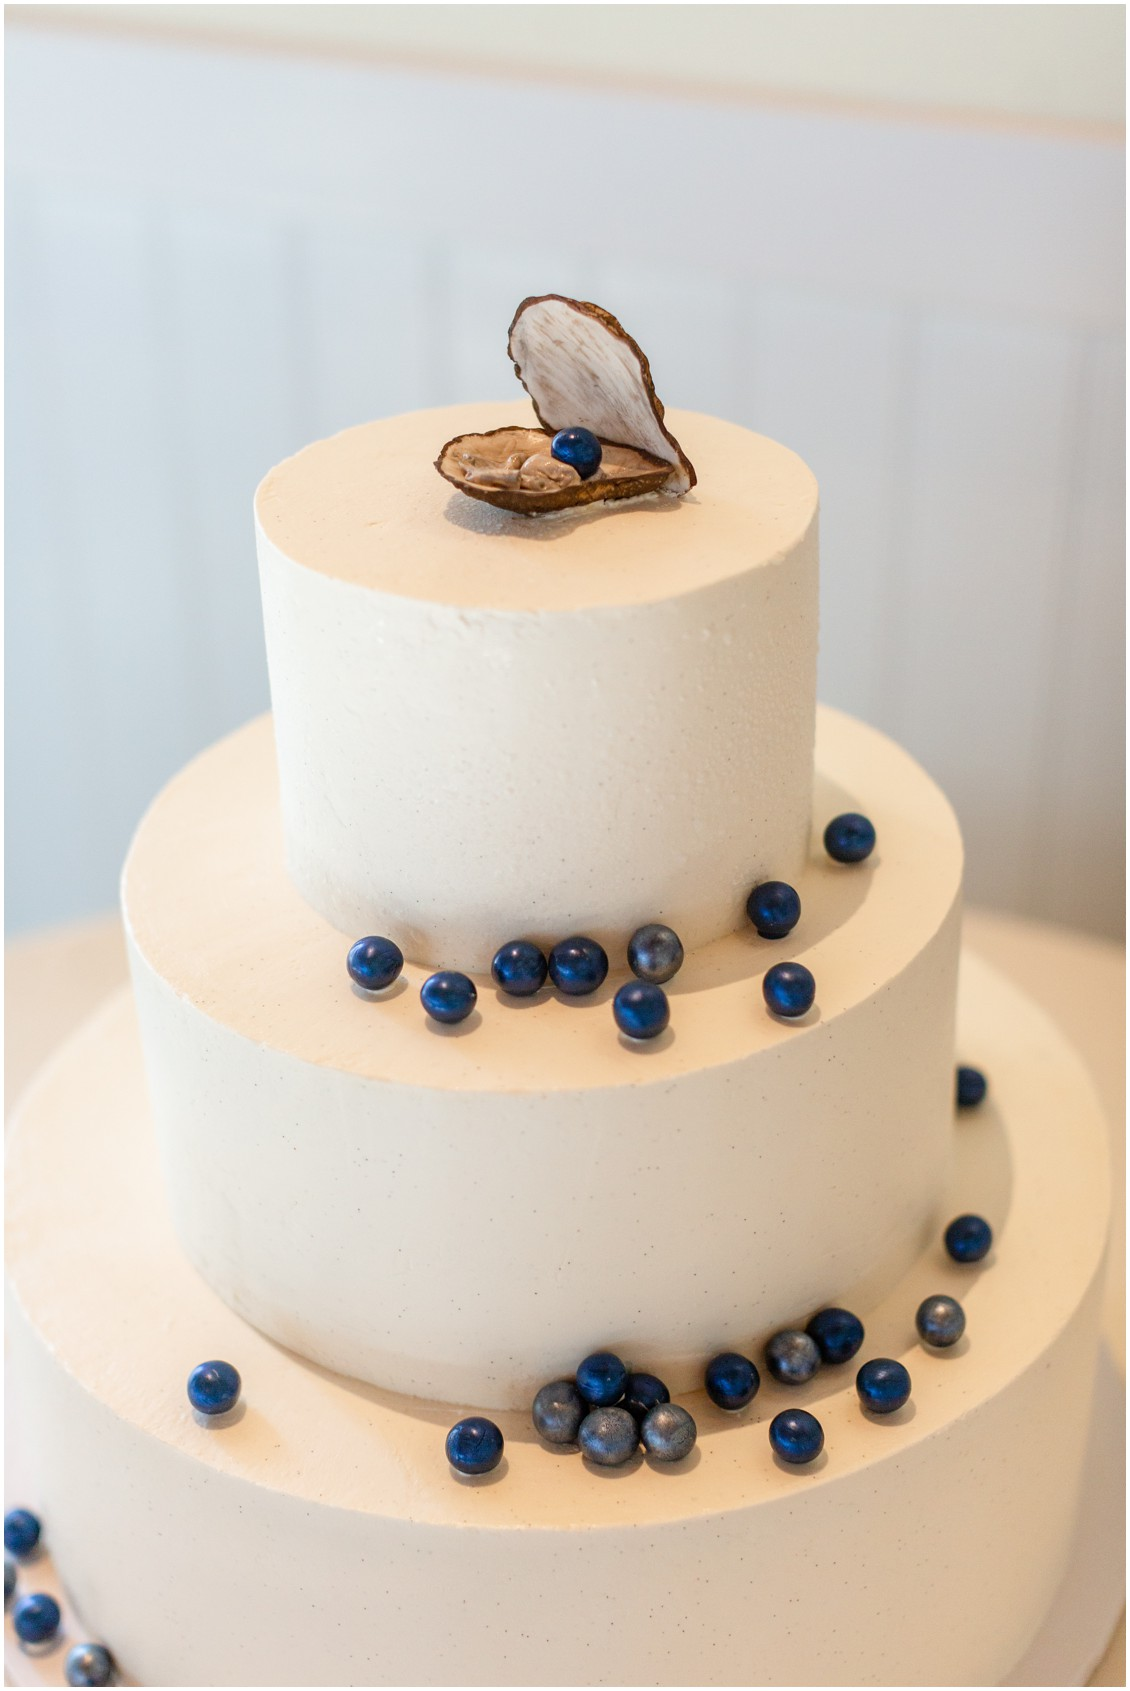 Oyster topped wedding cake with edible blue pearls  by Delaney's Delectables. | My Eastern Shore Wedding |